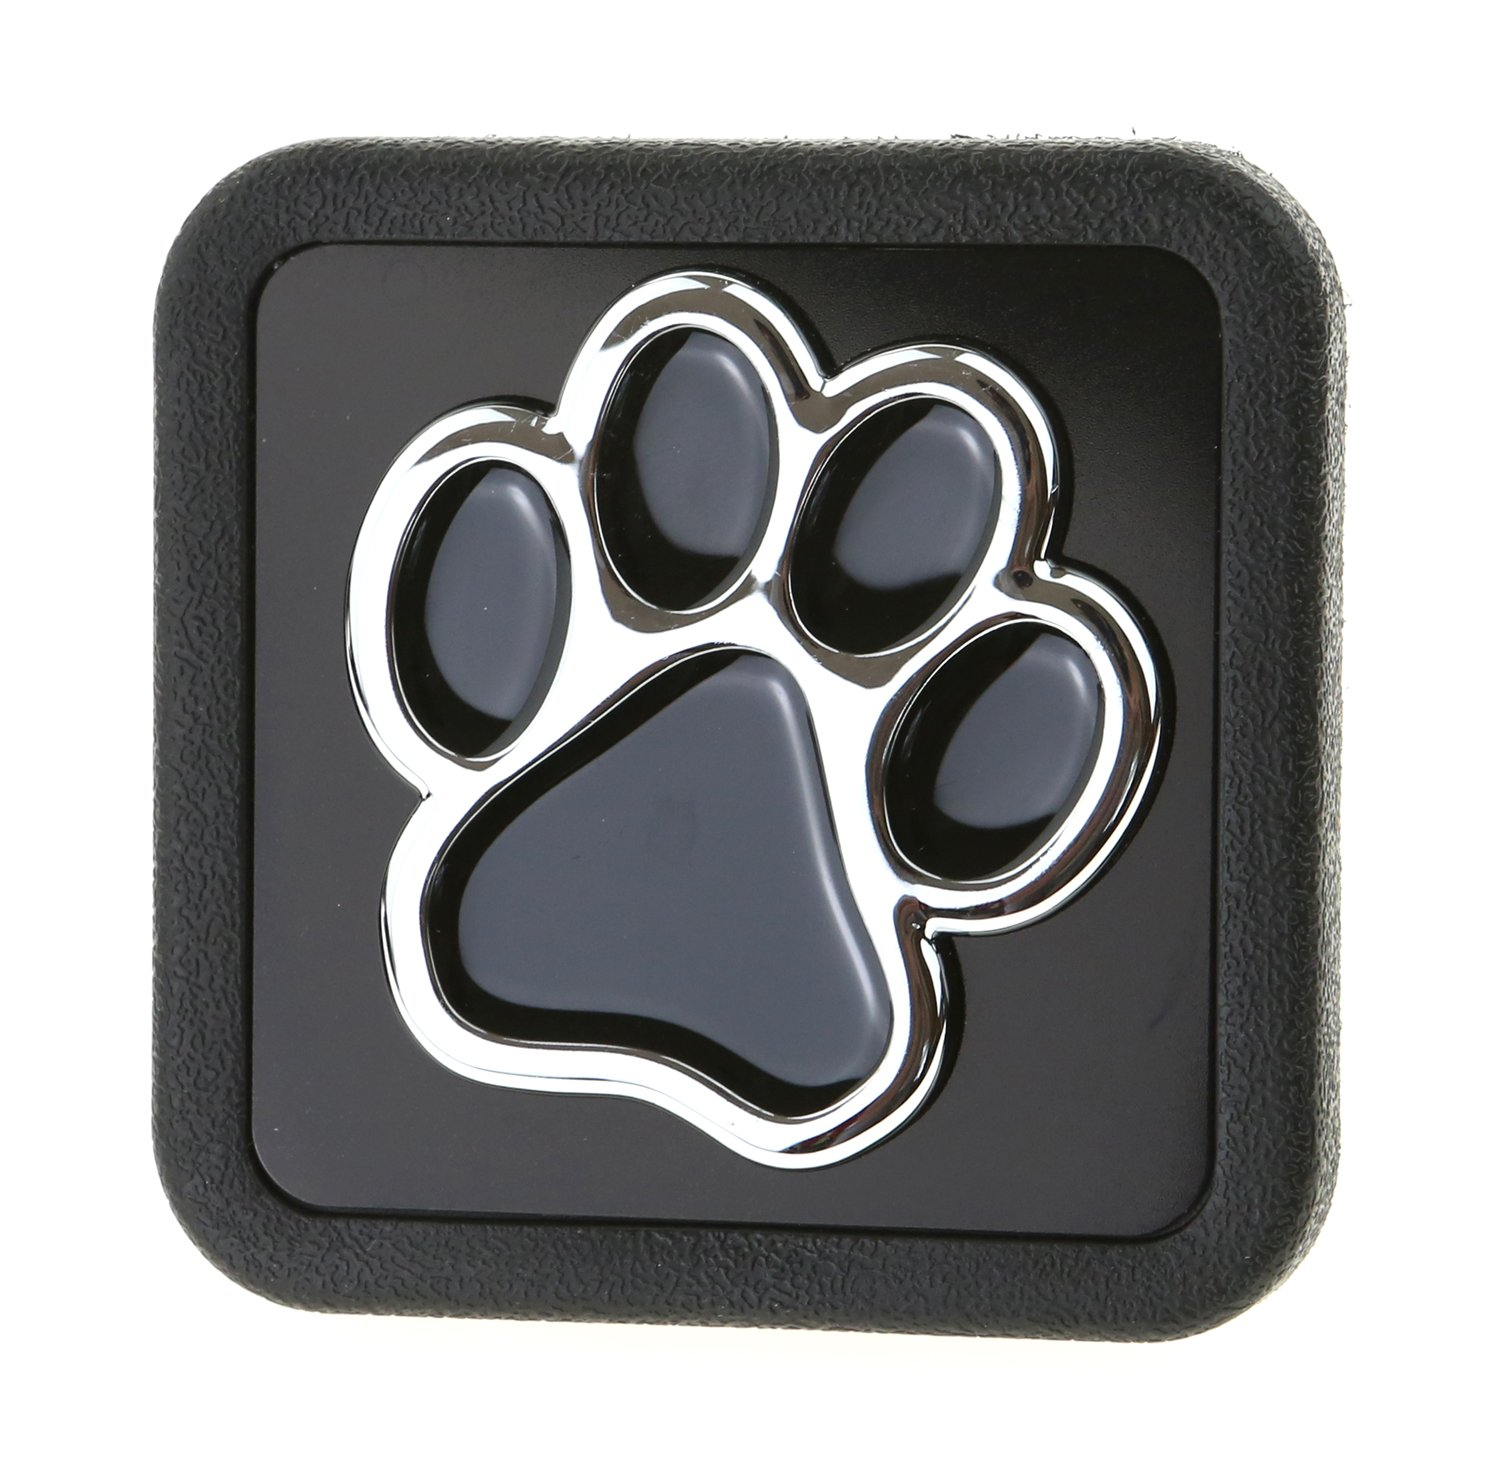 LFPartS 3D Chrome Emblem Trailer Hitch Cover Tube Plug Insert (Fits 2'' Receivers, Bear Dog Animal Paw Foot) by LFPartS